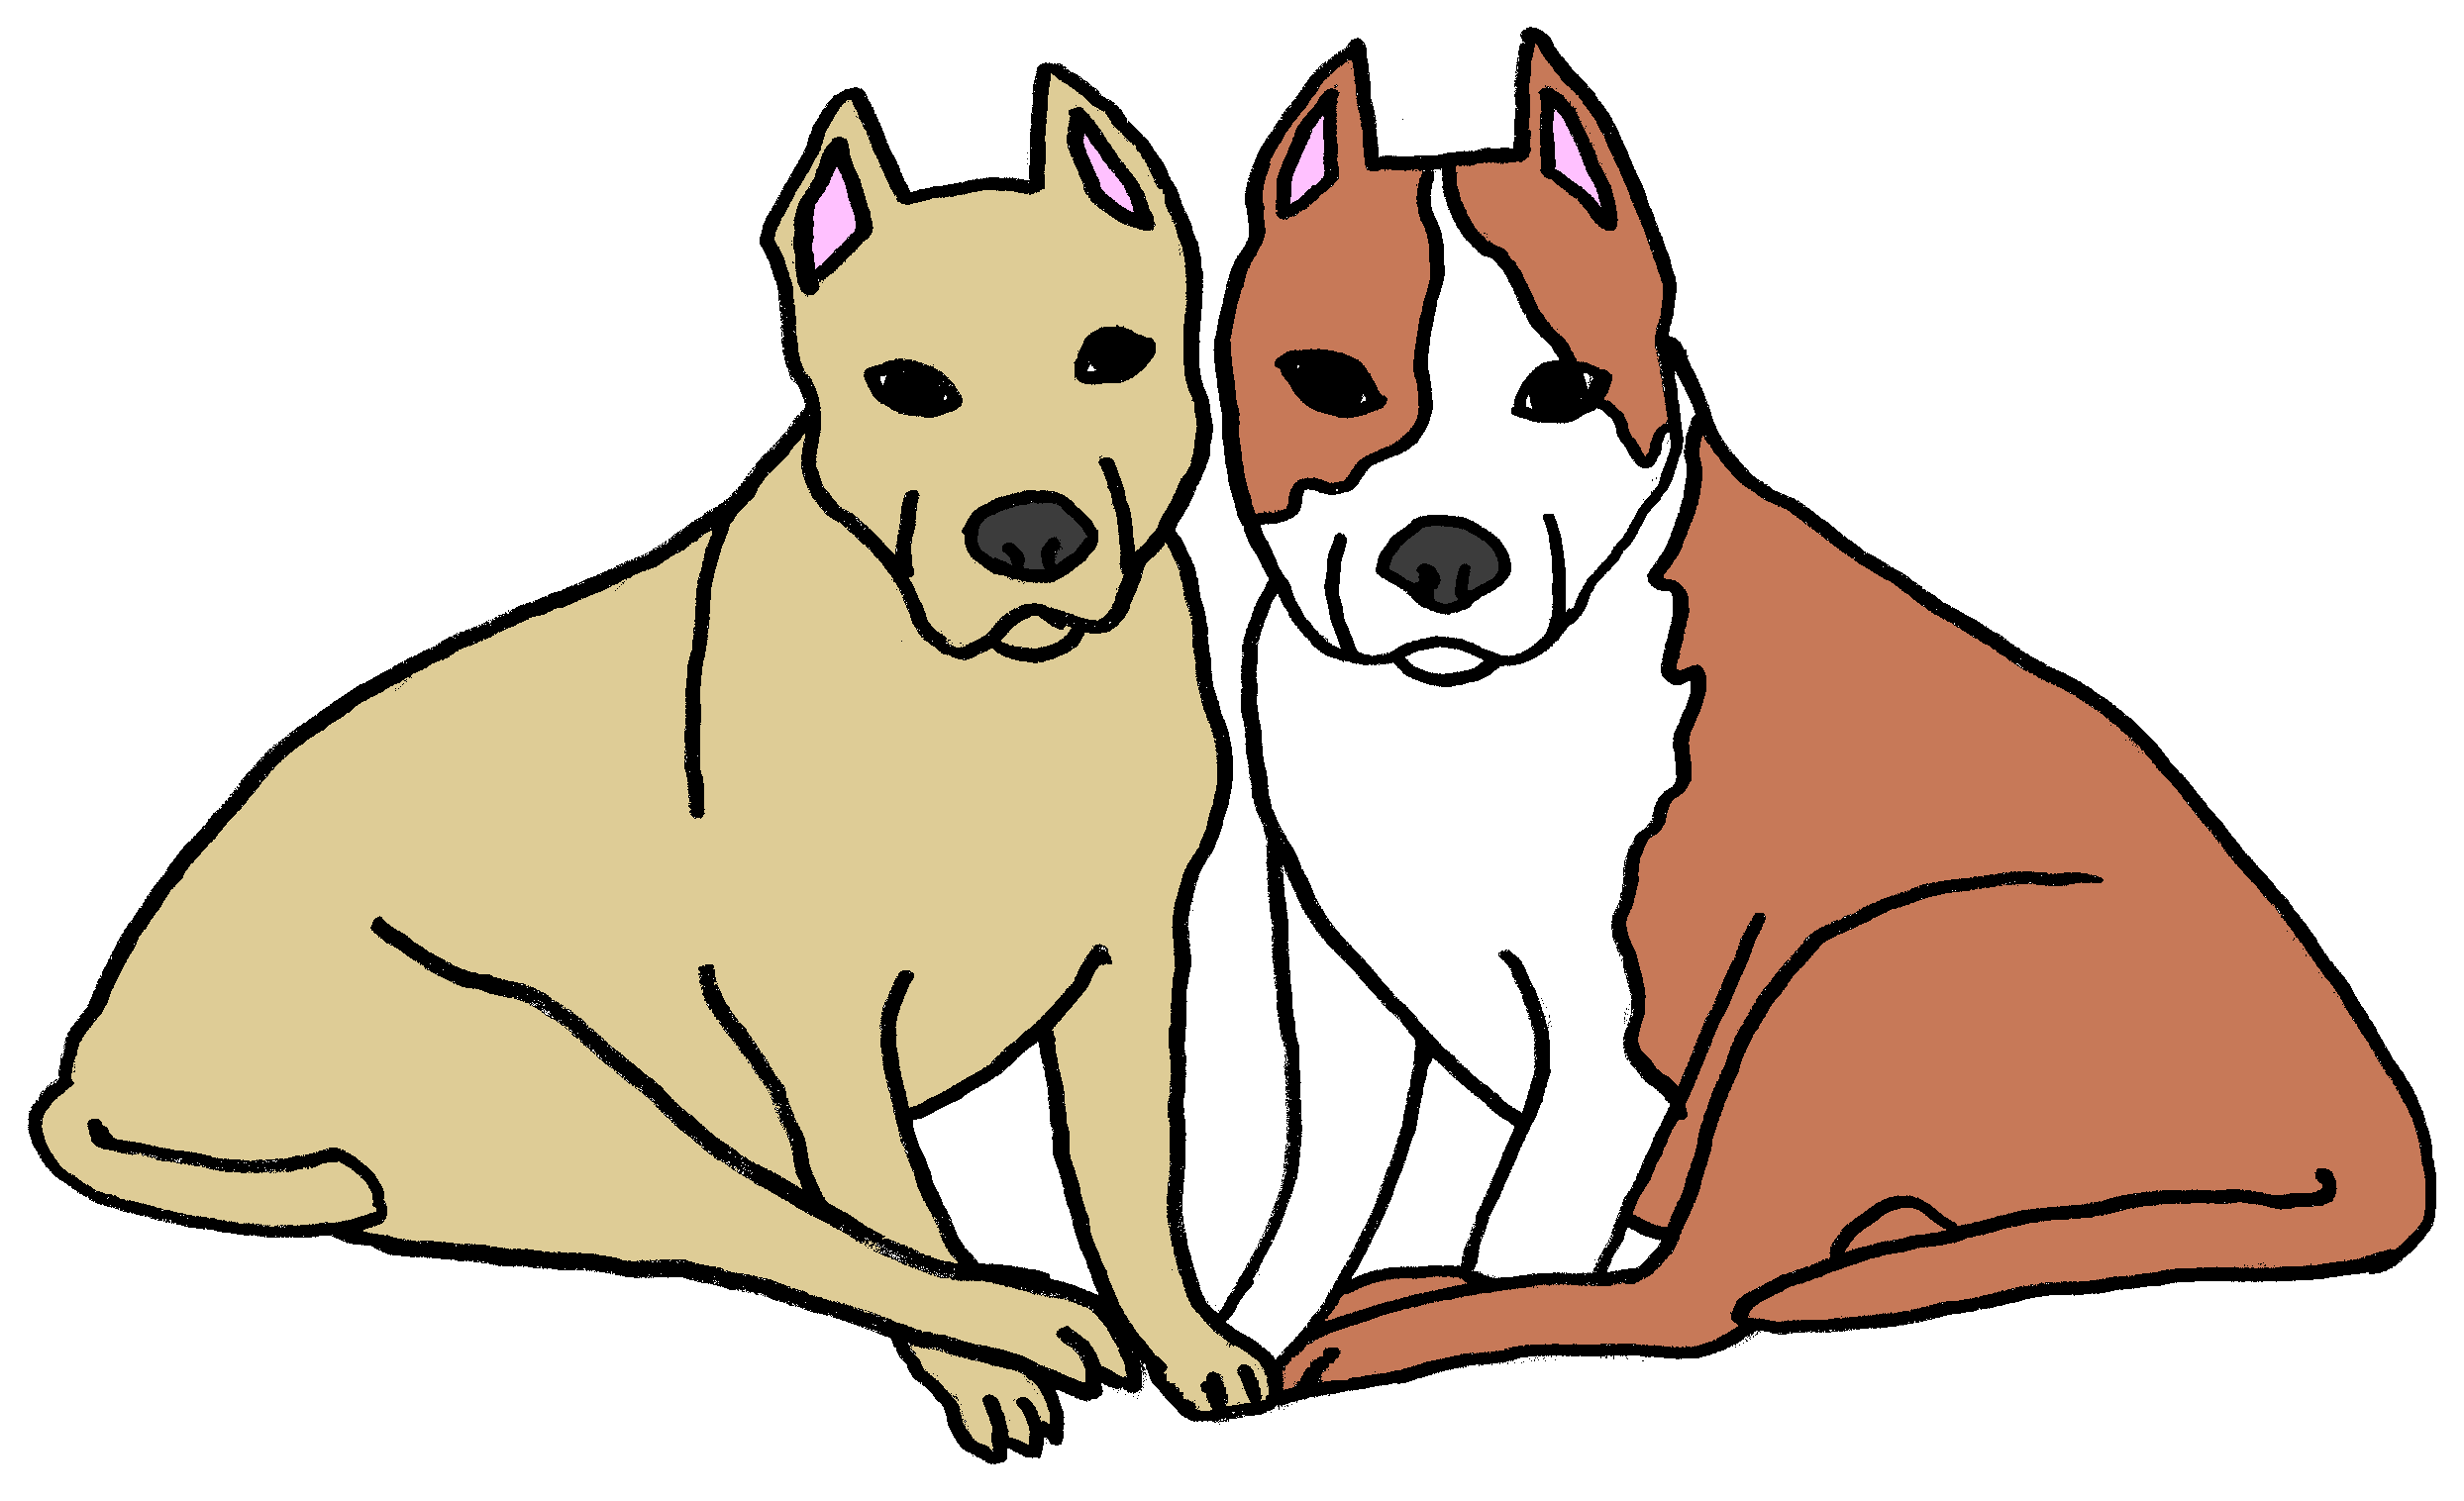 Two dogs clipart image royalty free 2 Dogs Clipart | Free download best 2 Dogs Clipart on ... image royalty free